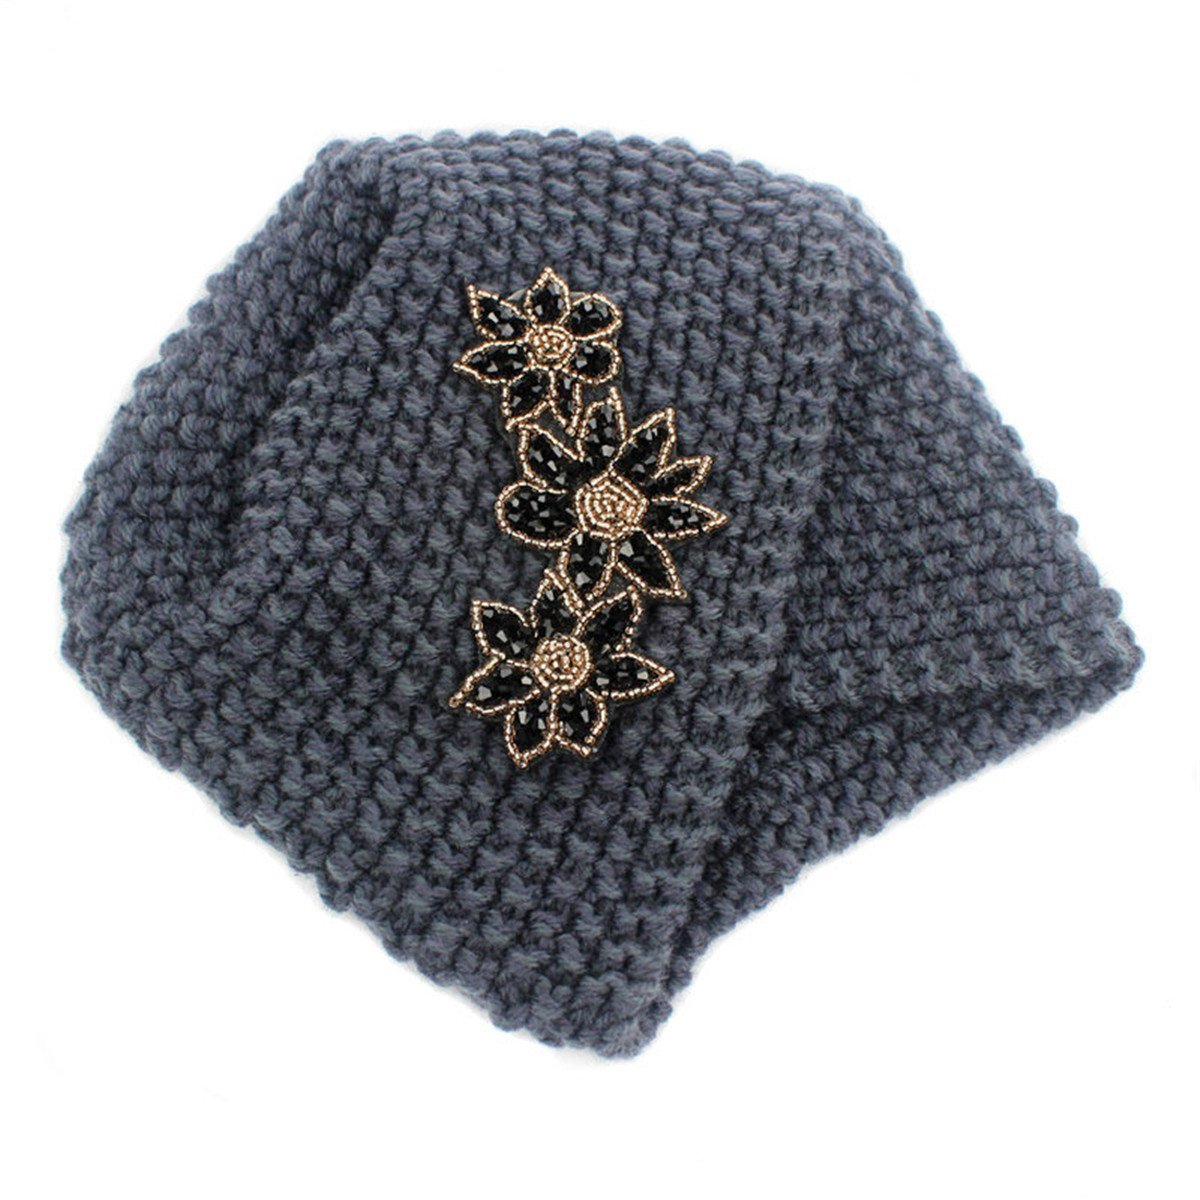 Qhome Ladies Winter Warm Turban Soft Knit Headband Beanie Crochet Headwrap Women Hat Cap with Beaded Jewelry